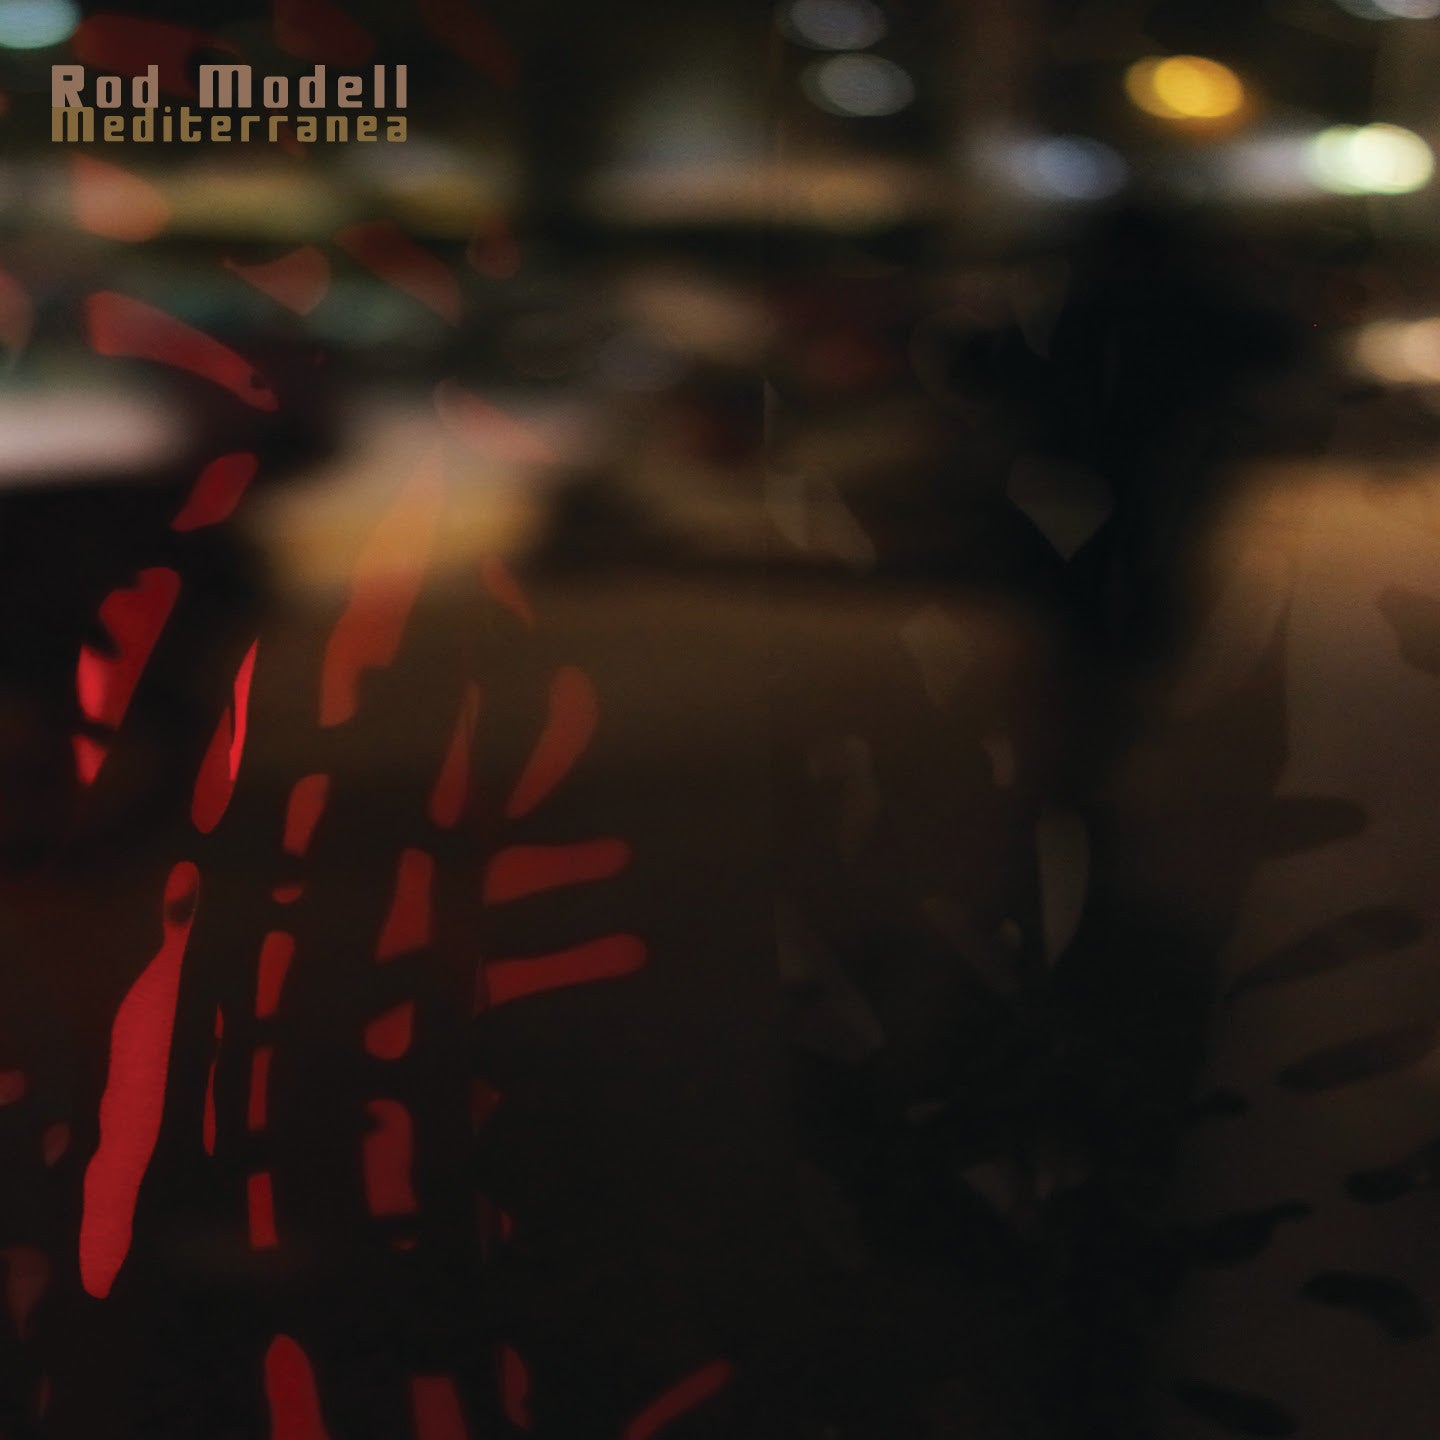 Rod Modell - Mediterranea CD , CD - Echospace, Unearthed Sounds